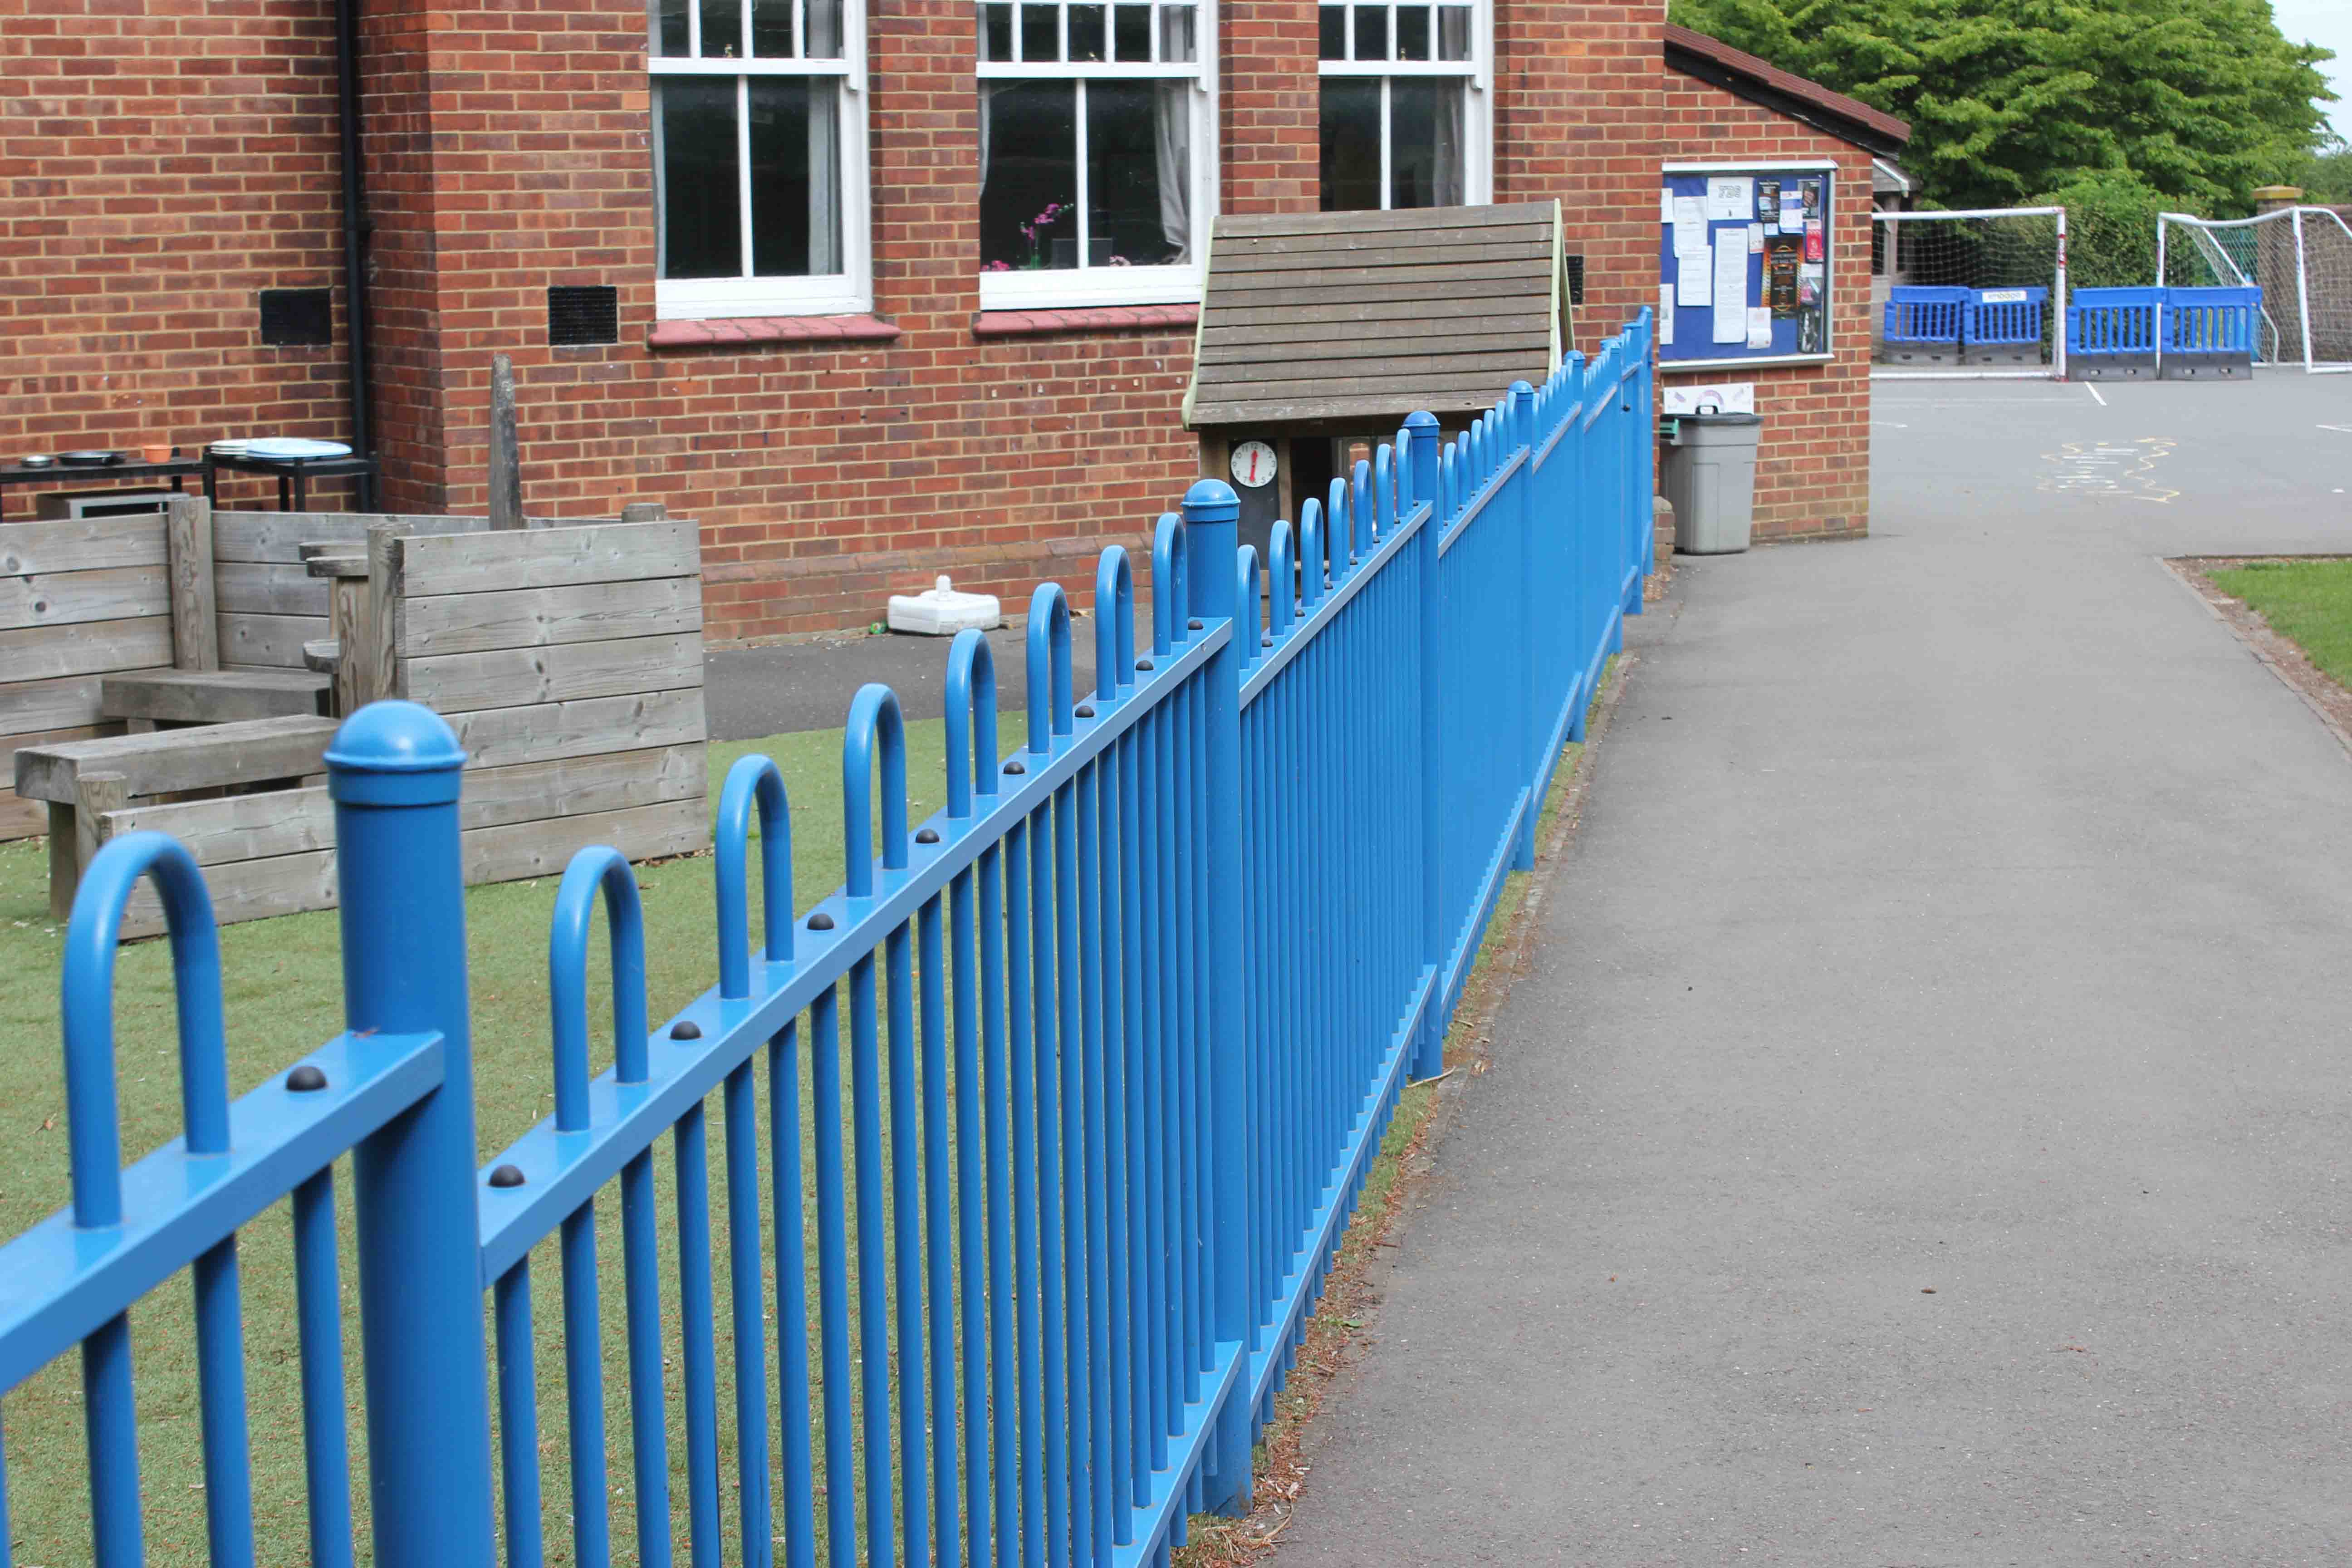 School safety fencing